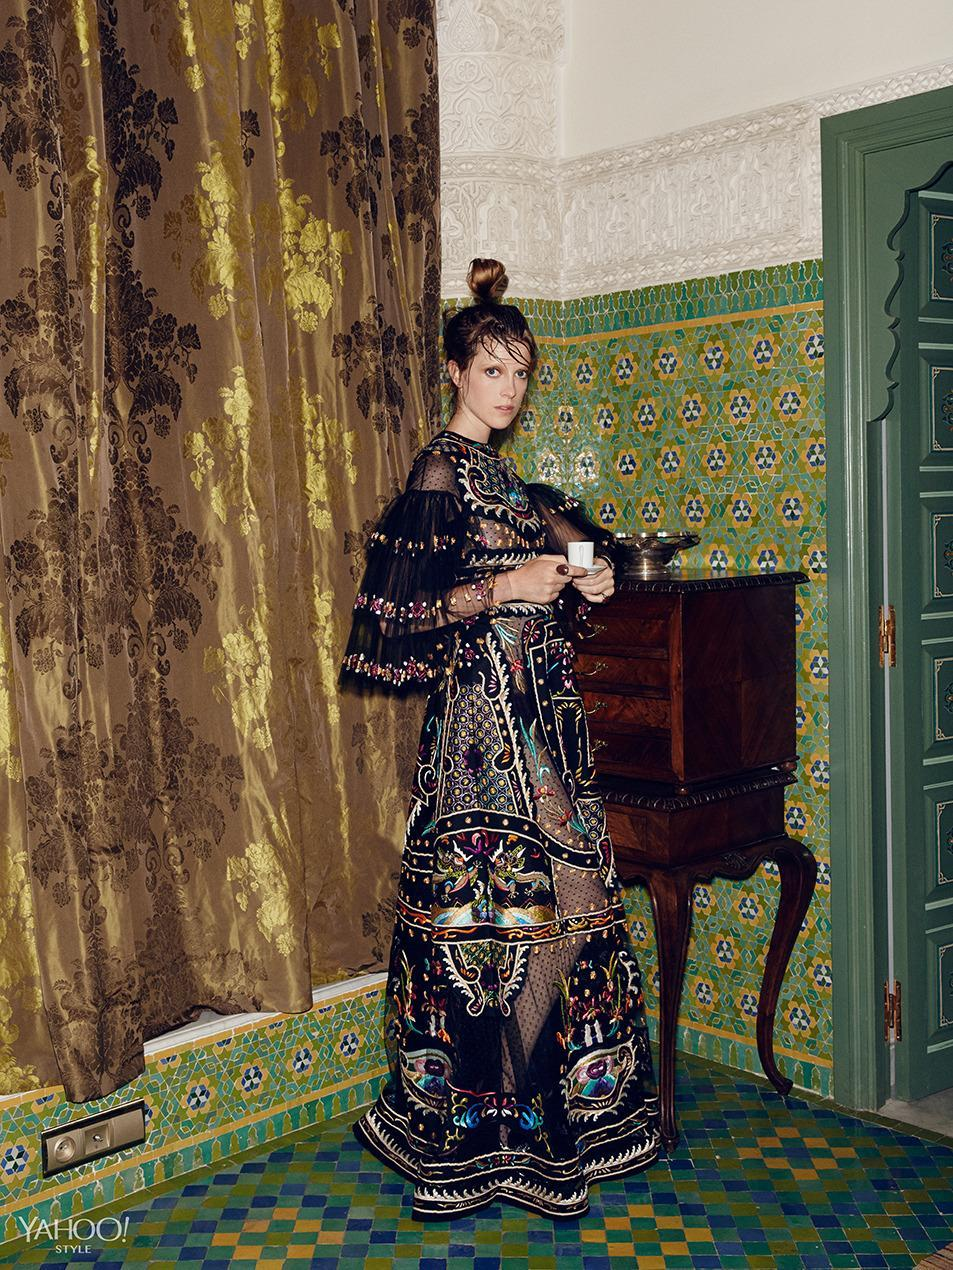 """<p>Big skirts, big hair, even bigger sleeves—volume in unexpected places, like the bell sleeves of this embroidered Valentino gown, is guaranteed to turn heads.<br>Valentino Orient Embroidery Gown, $39,000, <a href=""""http://www.valentino.com/us"""" rel=""""nofollow noopener"""" target=""""_blank"""" data-ylk=""""slk:valentino.com"""" class=""""link rapid-noclick-resp"""">valentino.com</a><br>New York Vintage Rings, Price Upon Request, <a href=""""http://newyorkvintage.com/"""" rel=""""nofollow noopener"""" target=""""_blank"""" data-ylk=""""slk:newyorkvintage.com"""" class=""""link rapid-noclick-resp"""">newyorkvintage.com</a><br>New York Vintage Bracelet, Price Upon Request, <a href=""""http://newyorkvintage.com/"""" rel=""""nofollow noopener"""" target=""""_blank"""" data-ylk=""""slk:newyorkvintage.com"""" class=""""link rapid-noclick-resp"""">newyorkvintage.com</a><br>Location: <a href=""""http://www.palaisfaraj.com/NS/"""" rel=""""nofollow noopener"""" target=""""_blank"""" data-ylk=""""slk:Palais Faraj Suites & Spa"""" class=""""link rapid-noclick-resp"""">Palais Faraj Suites & Spa</a><br></p>"""